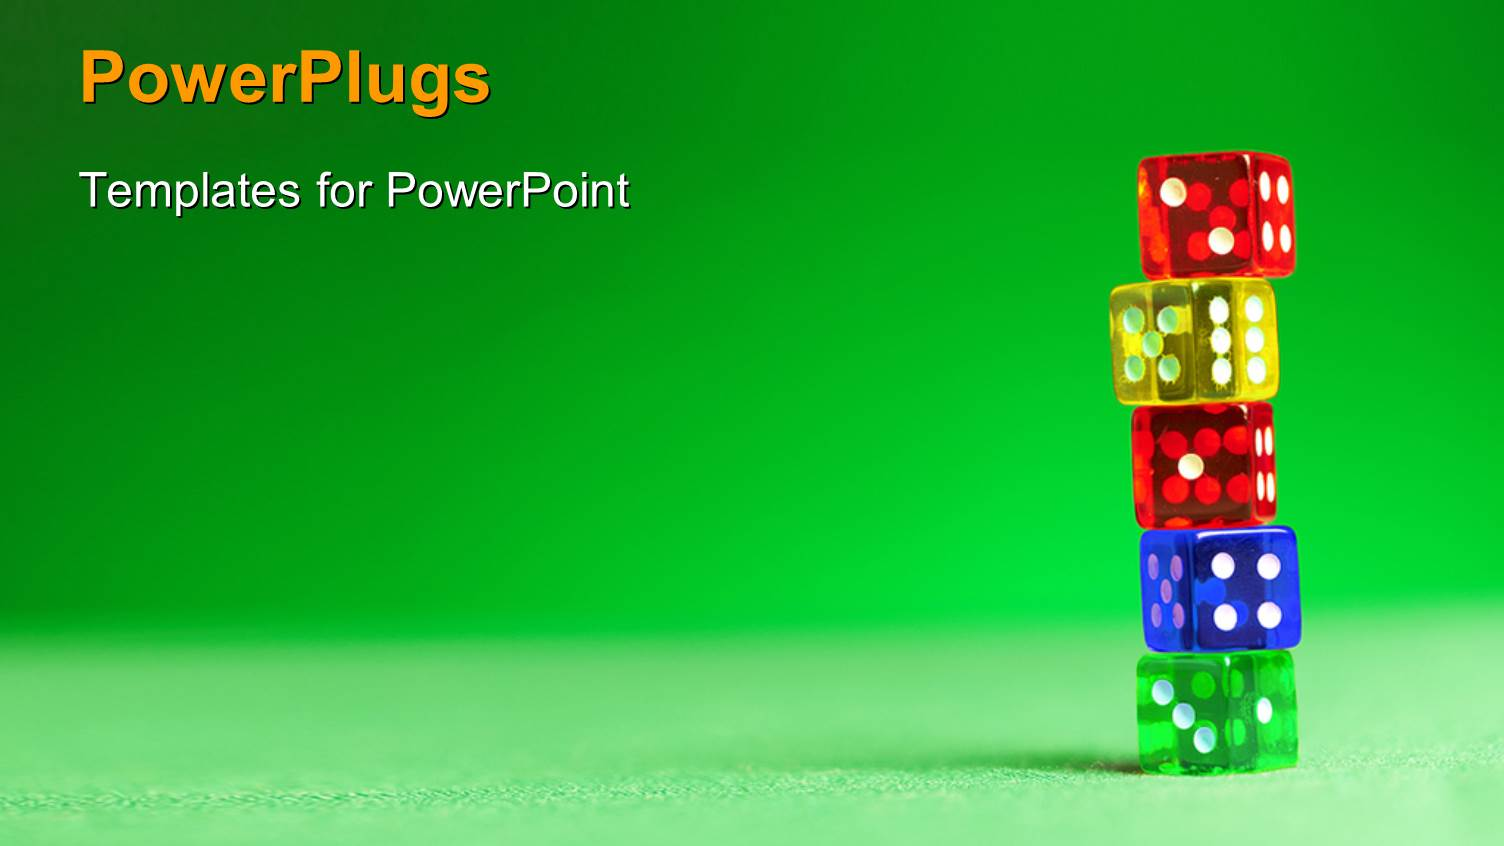 Free powerpoint templates 2529 html free ppt powerpoint templates - Powerplugs Powerpoint Template With A Number Of Colorful Dices With Greenish Background